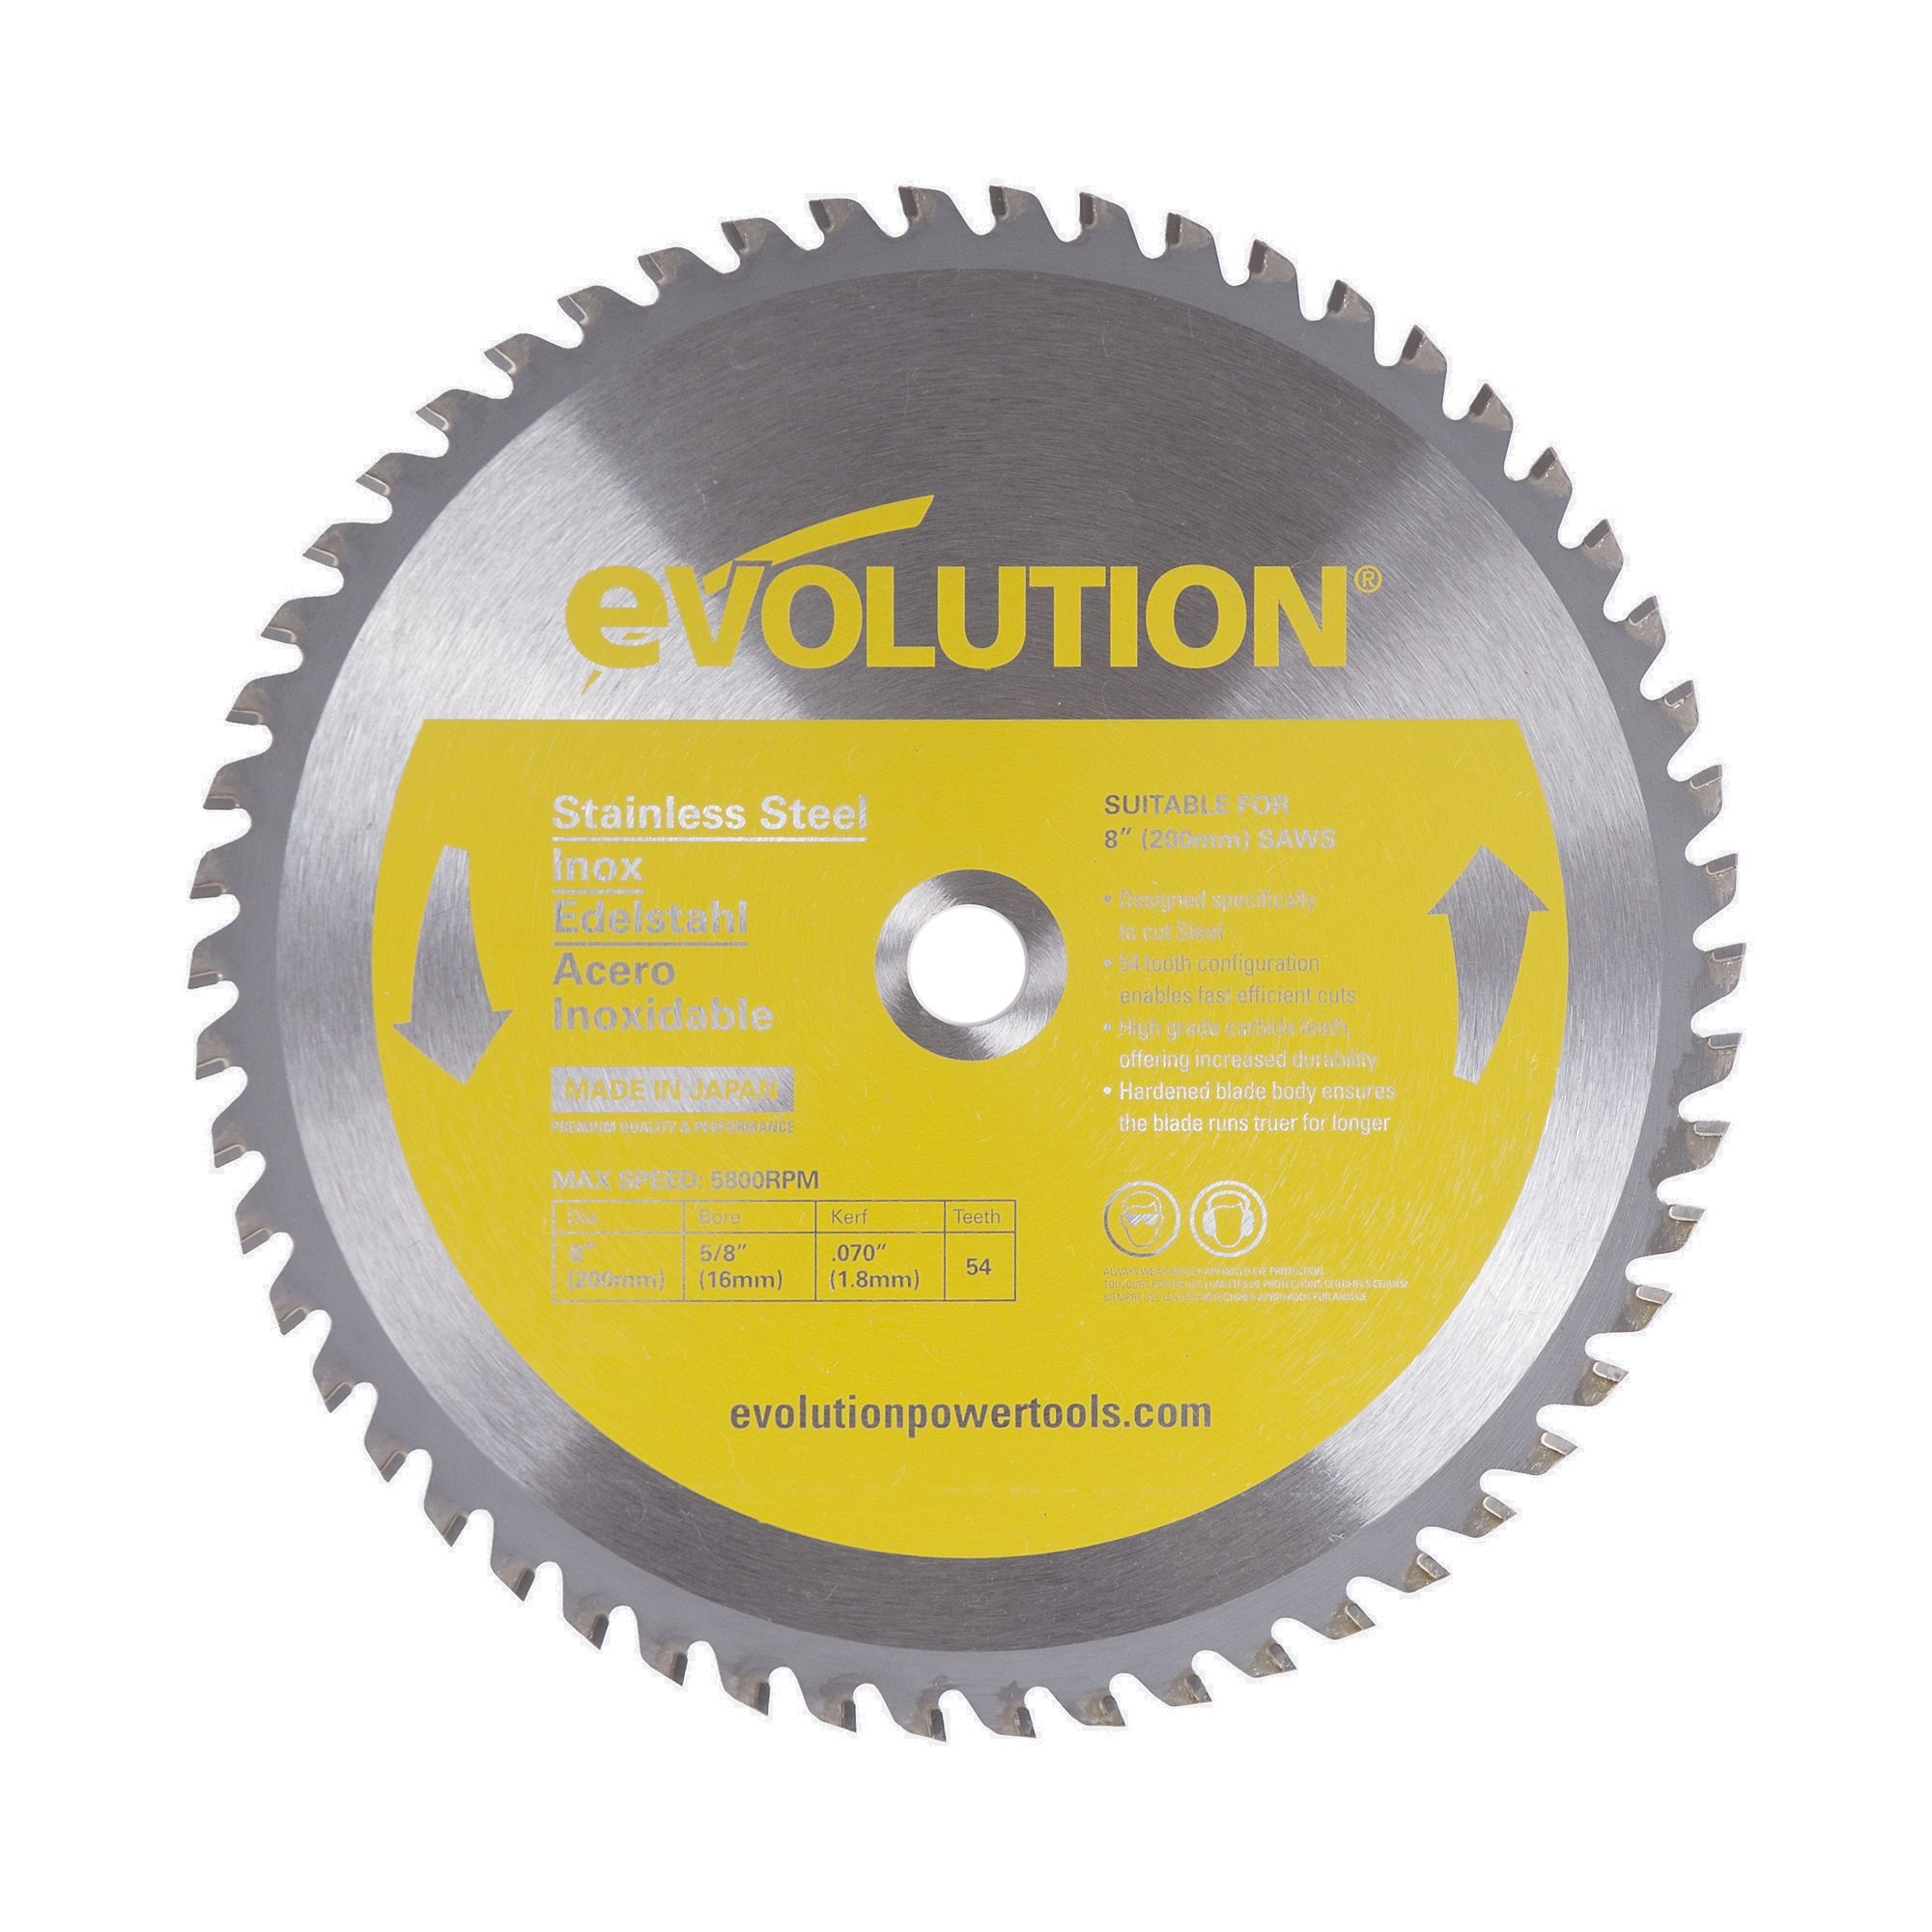 Evolution Power Tools 8BLADESS Stainless Steel Cutting Saw Blade, 8-Inch x 54-Tooth